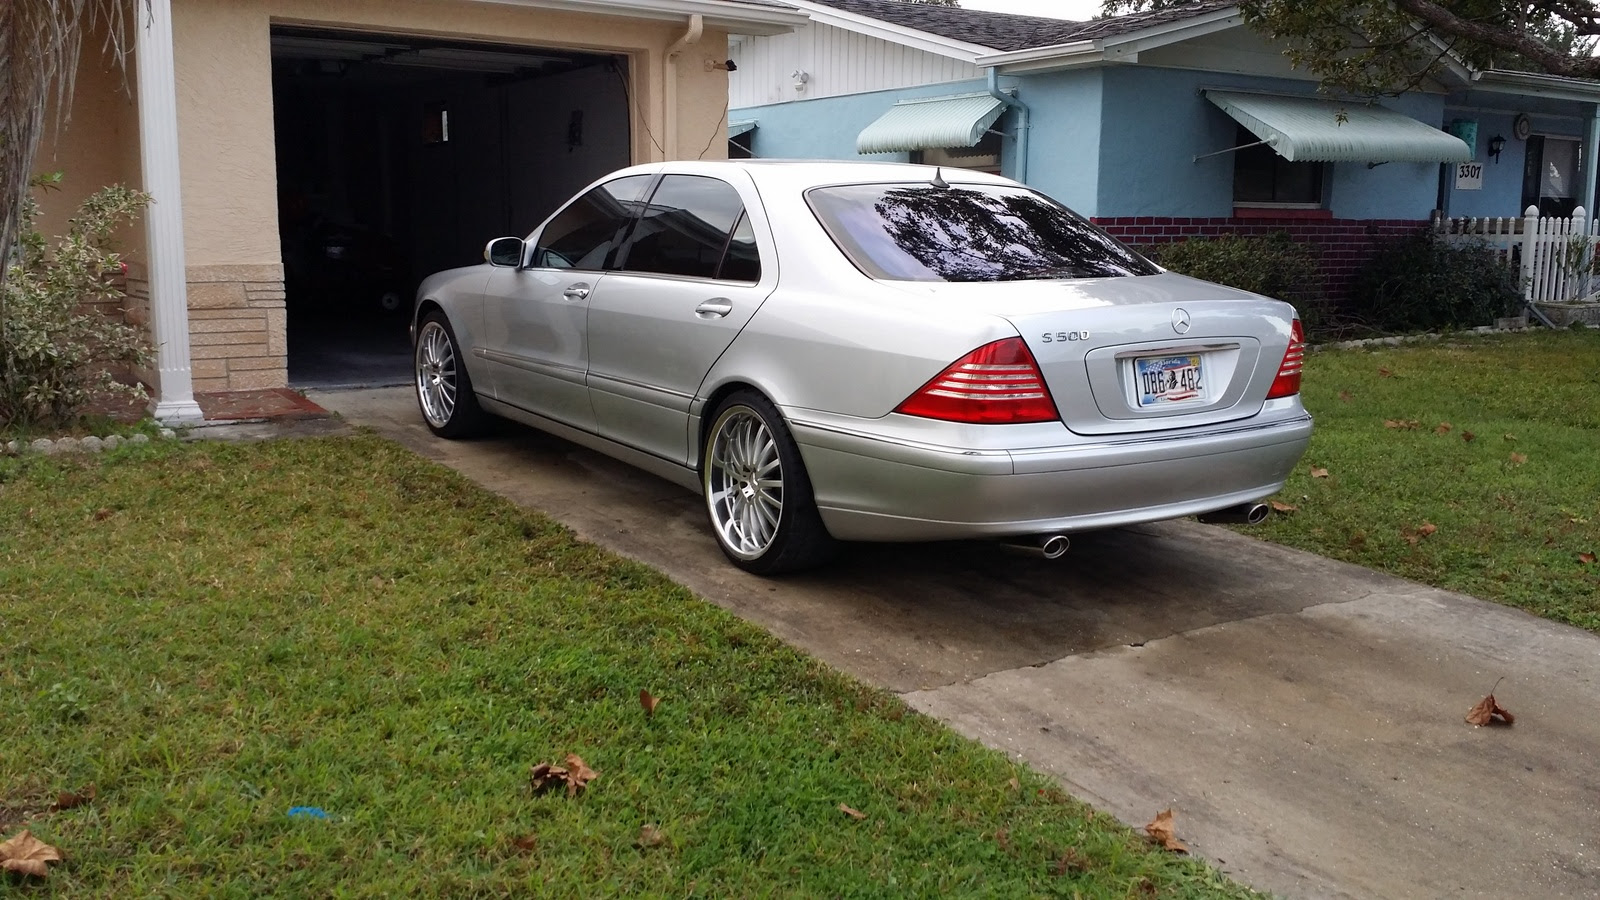 2001 Mercedes-Benz S-Class - Pictures - CarGurus